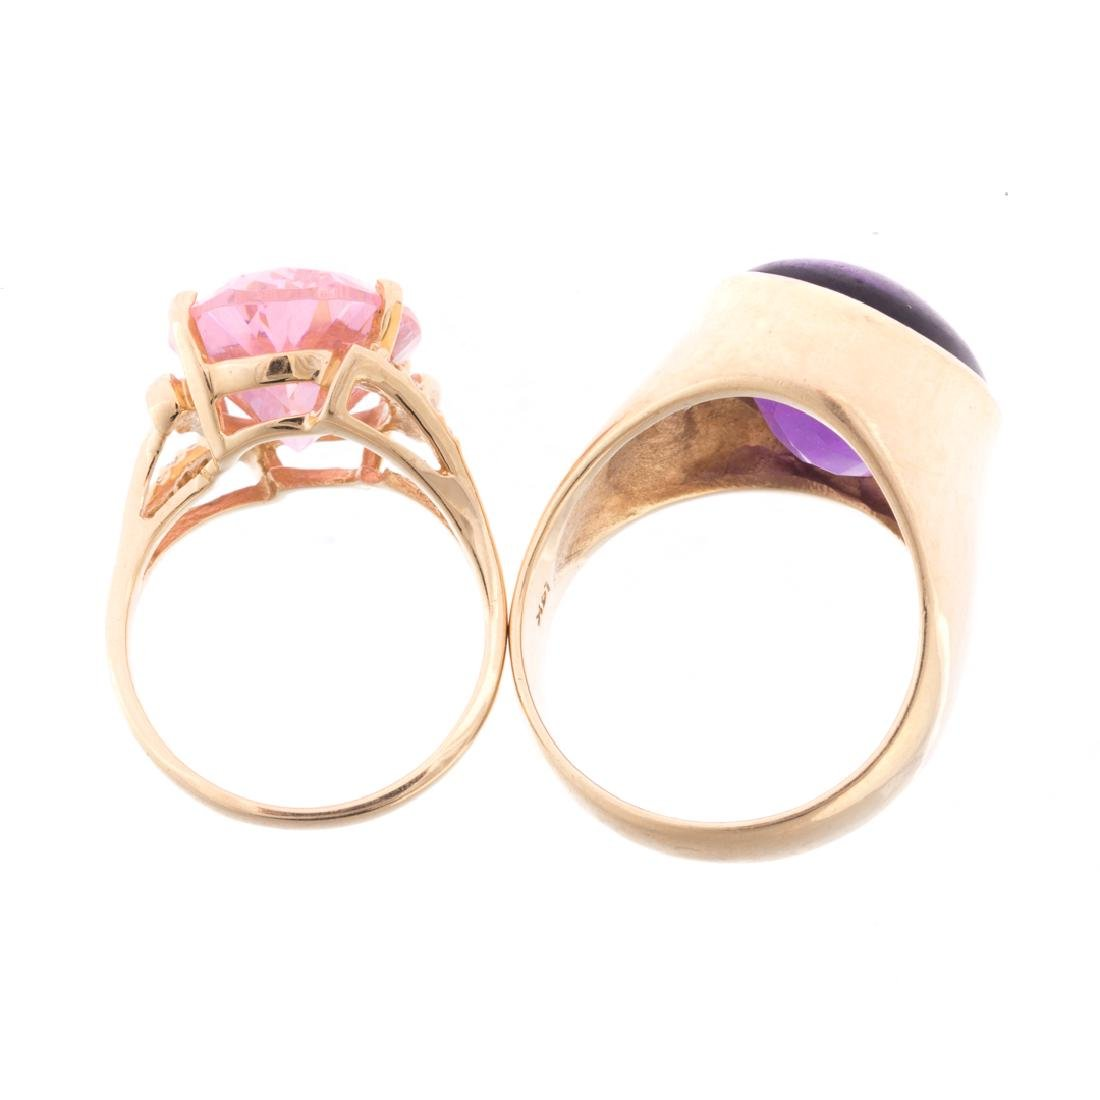 Two Lady's Gemstone Rings in 14K Gold - 4